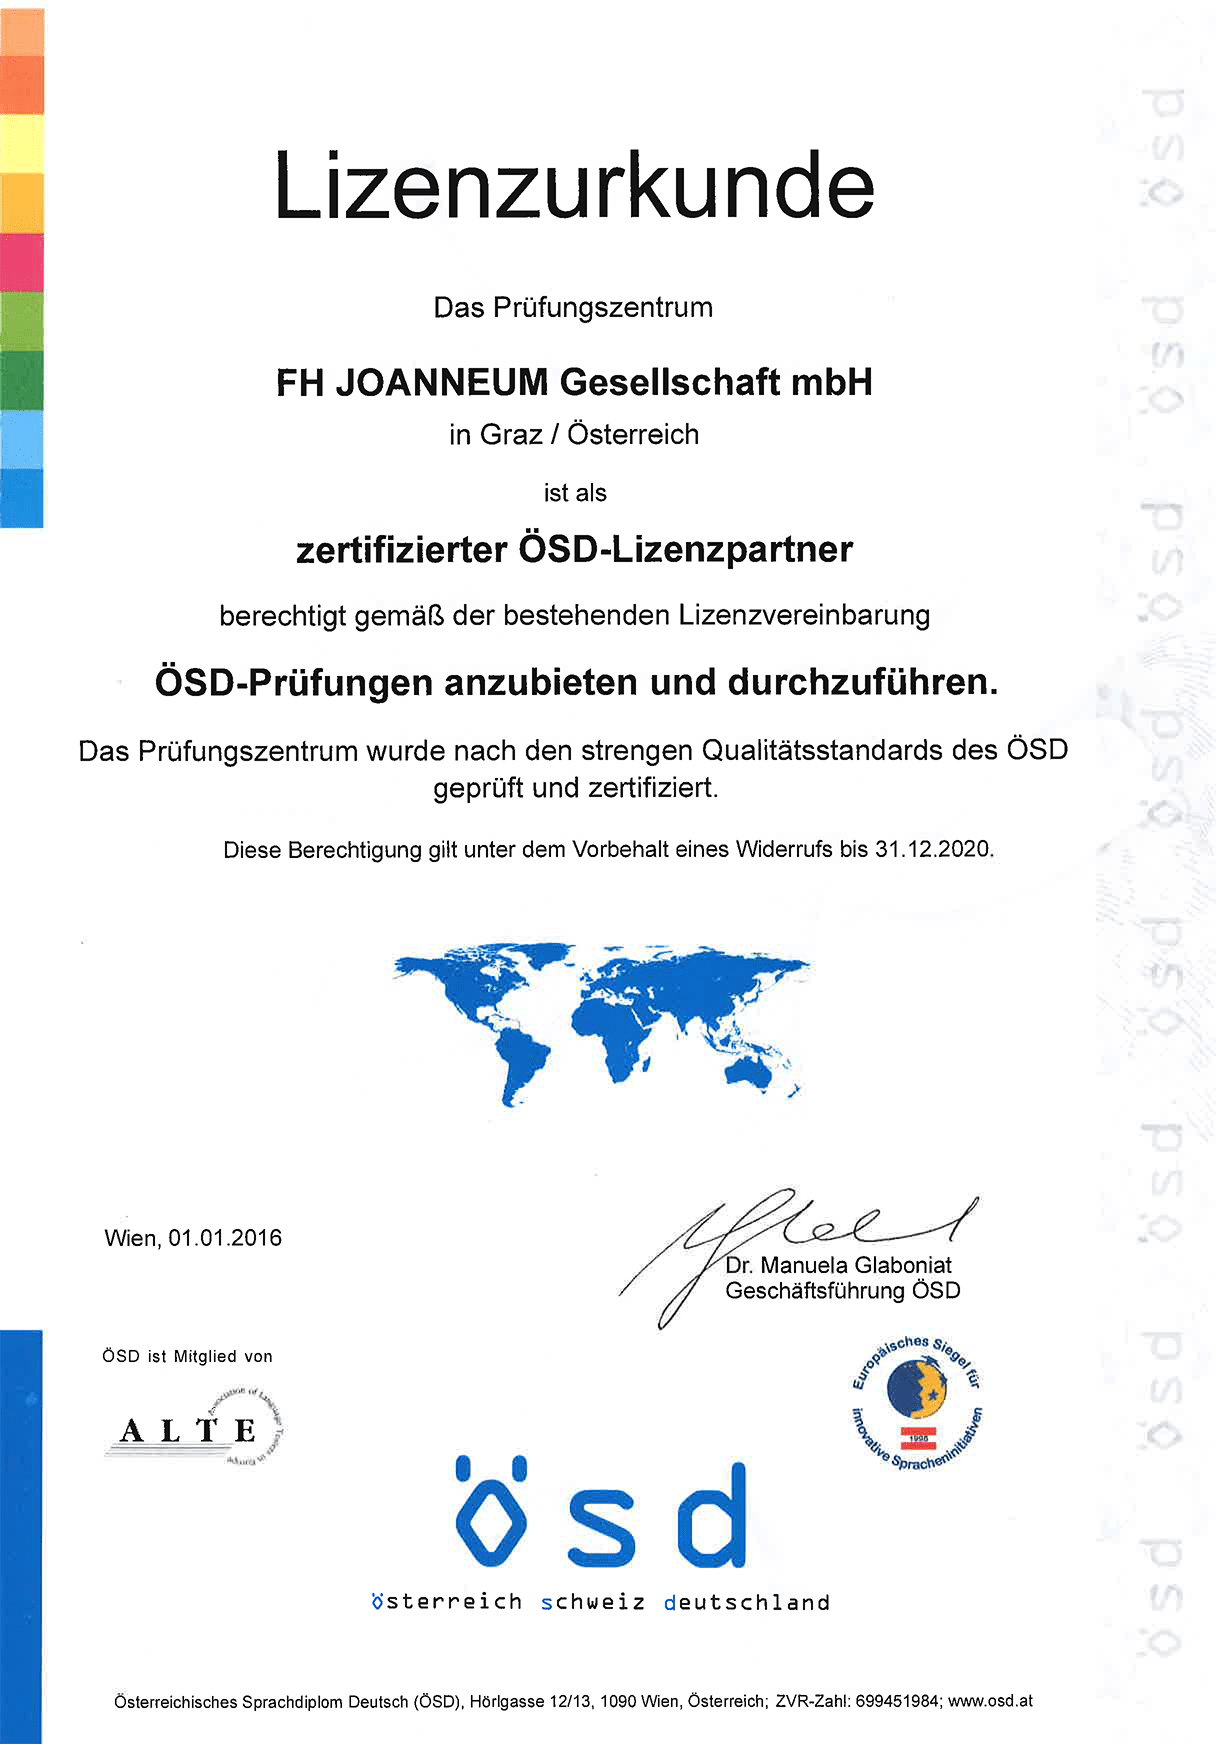 German Language Diploma ösd Fh Joanneum